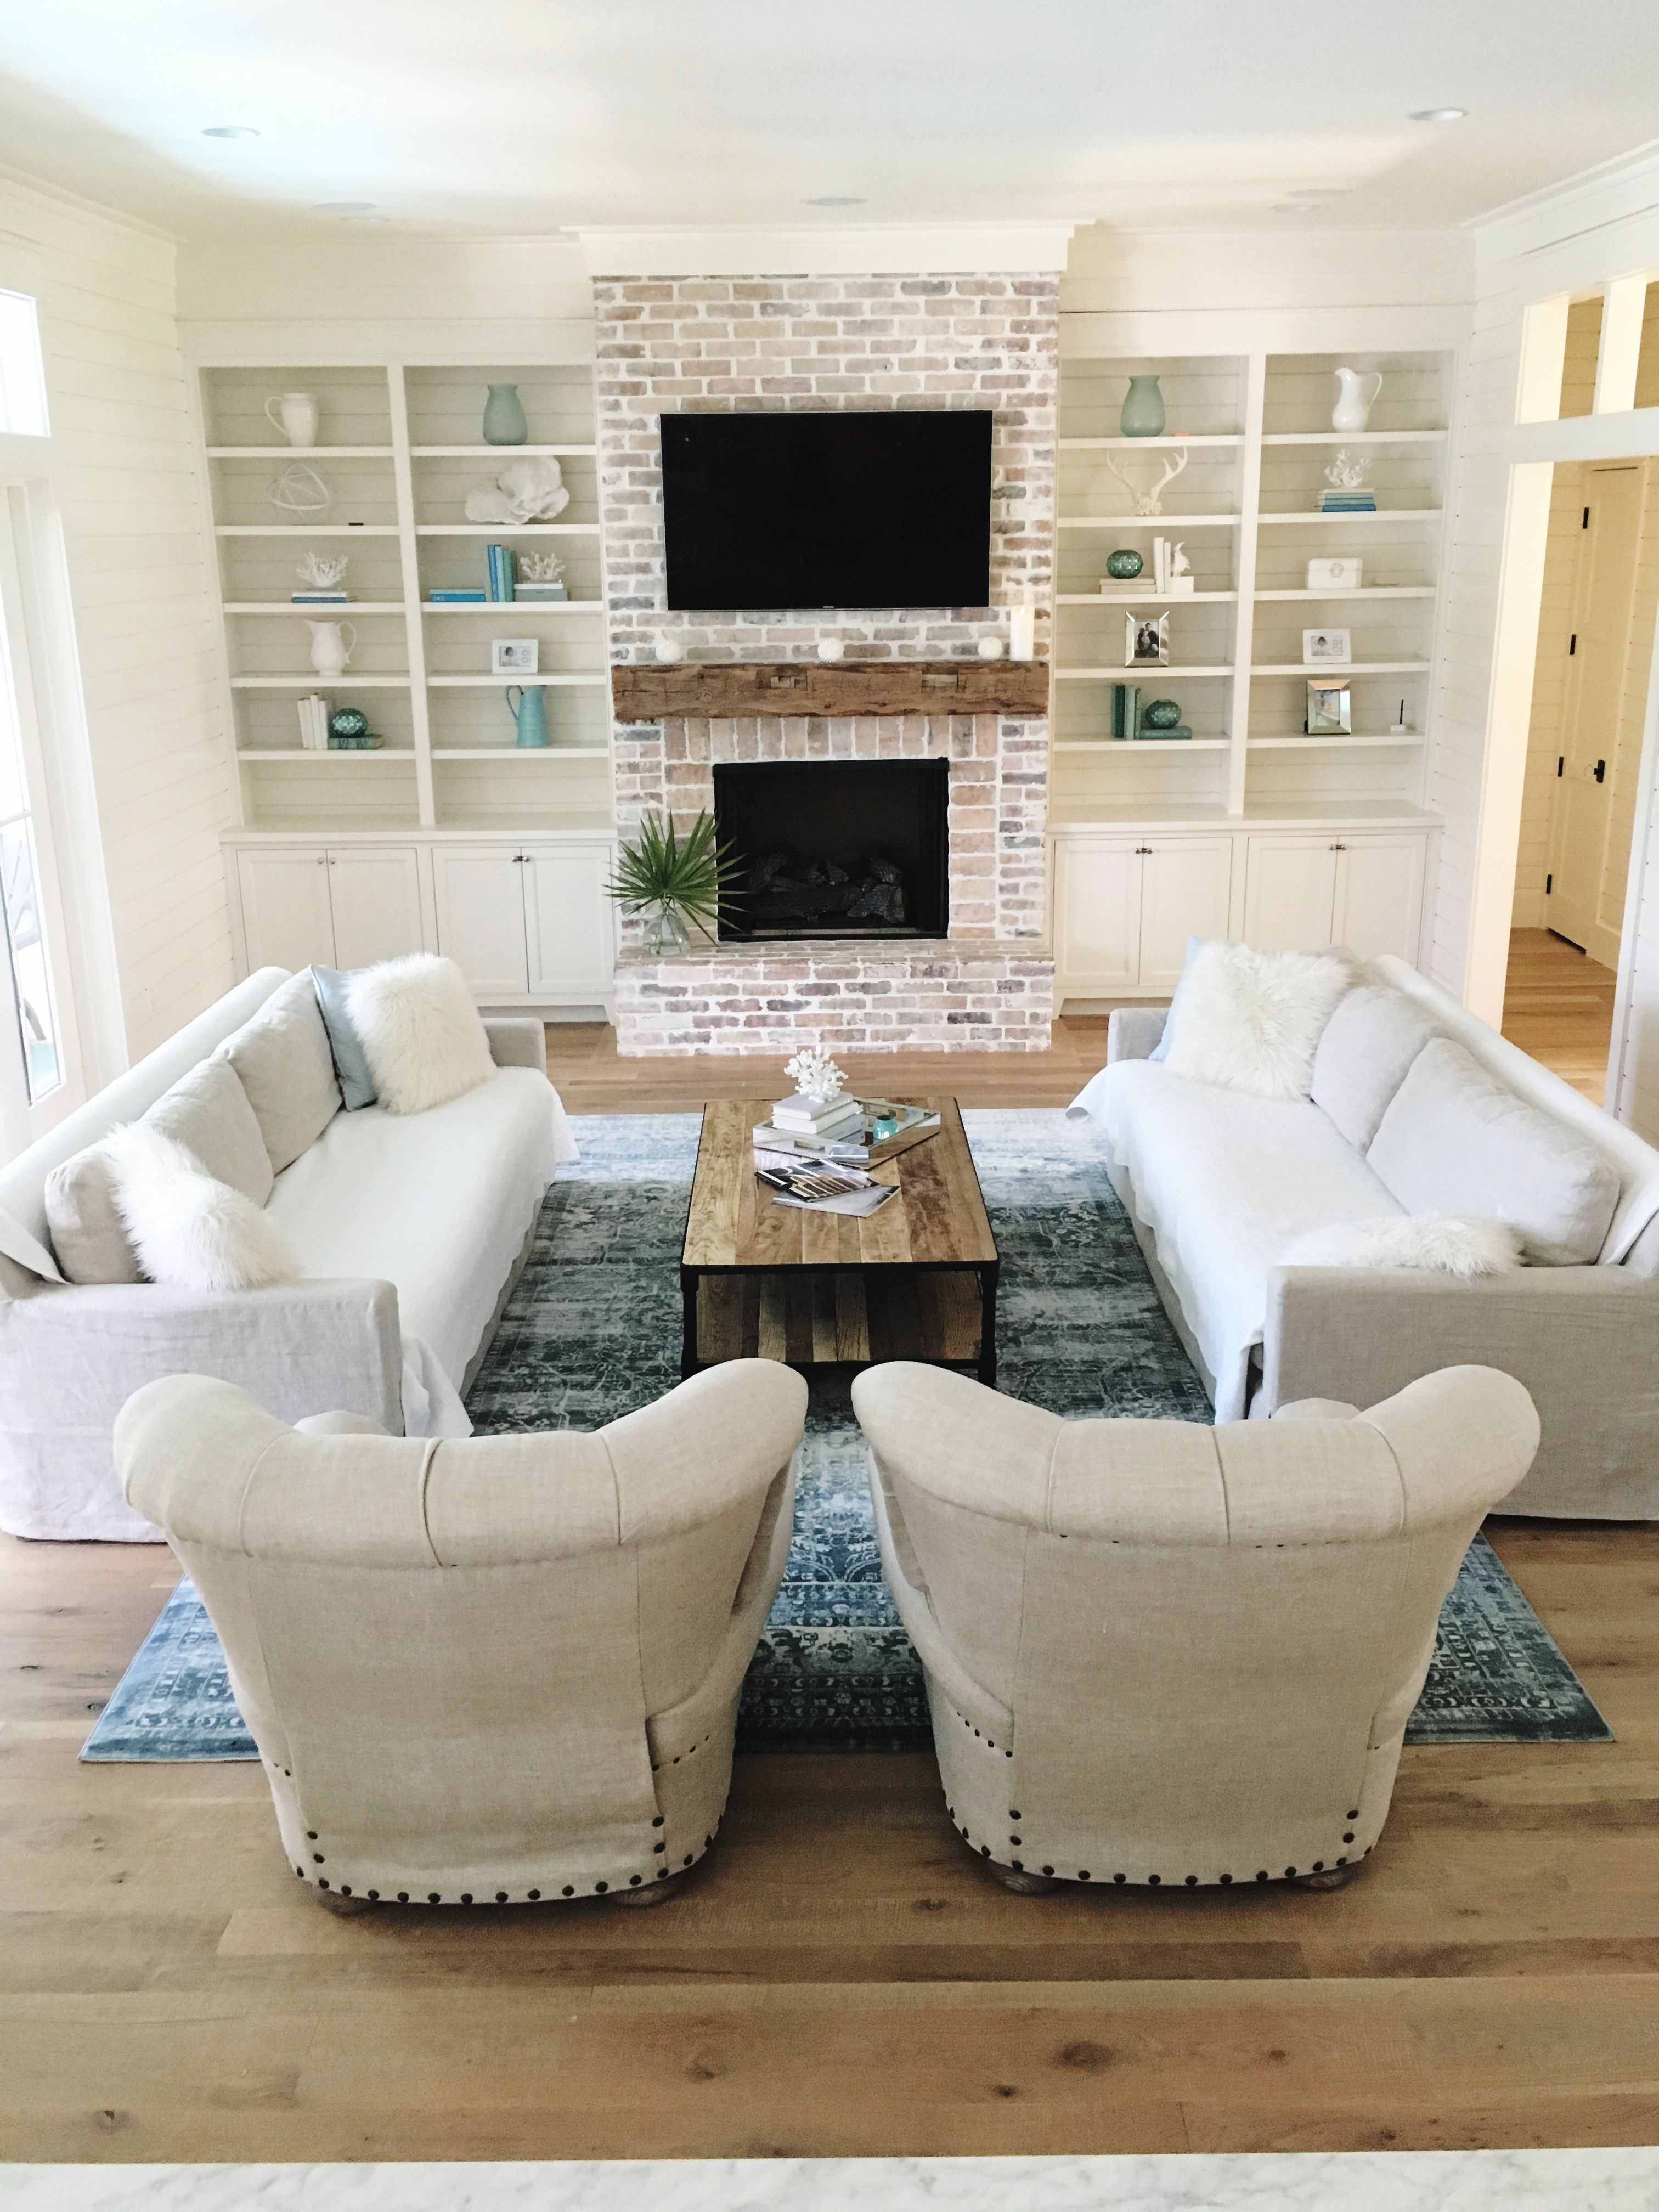 Corner Fireplace Furniture Placement Awesome 20 Cozy Corner Fireplace Ideas for Your Living Room